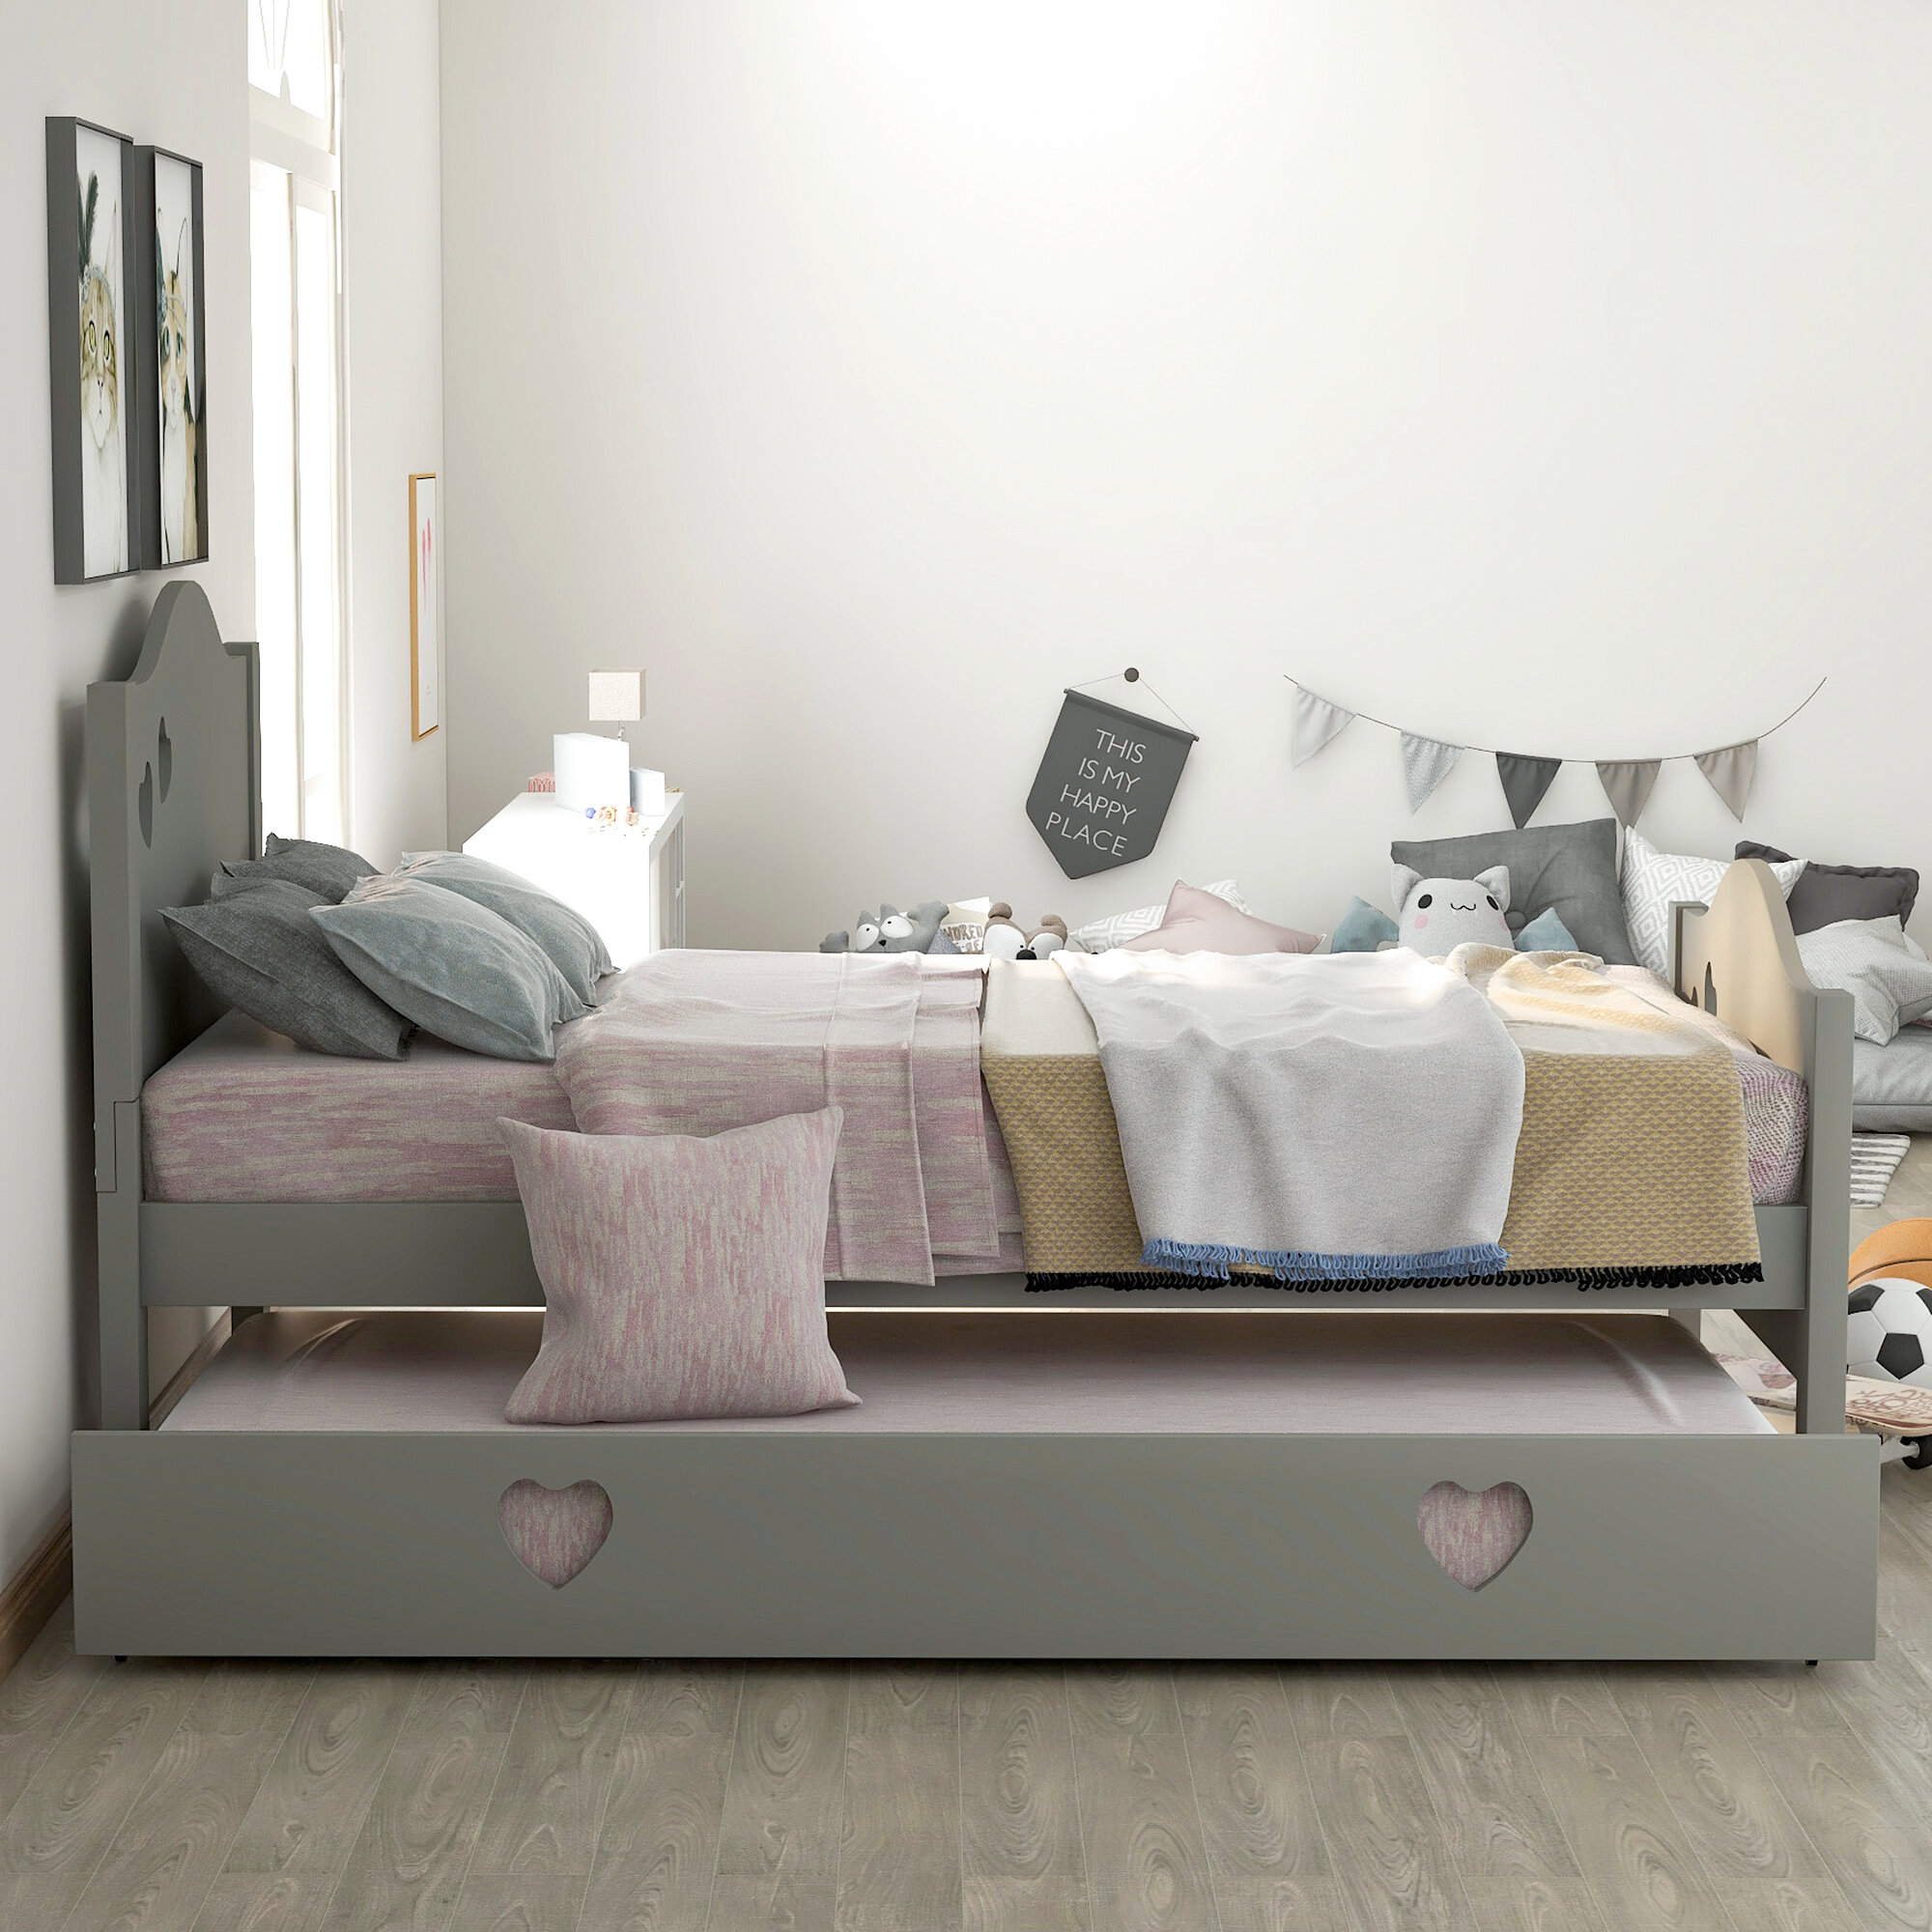 - Harriet Bee Twin Size Daybed With Trundle, Solid Wood Twin Bed For